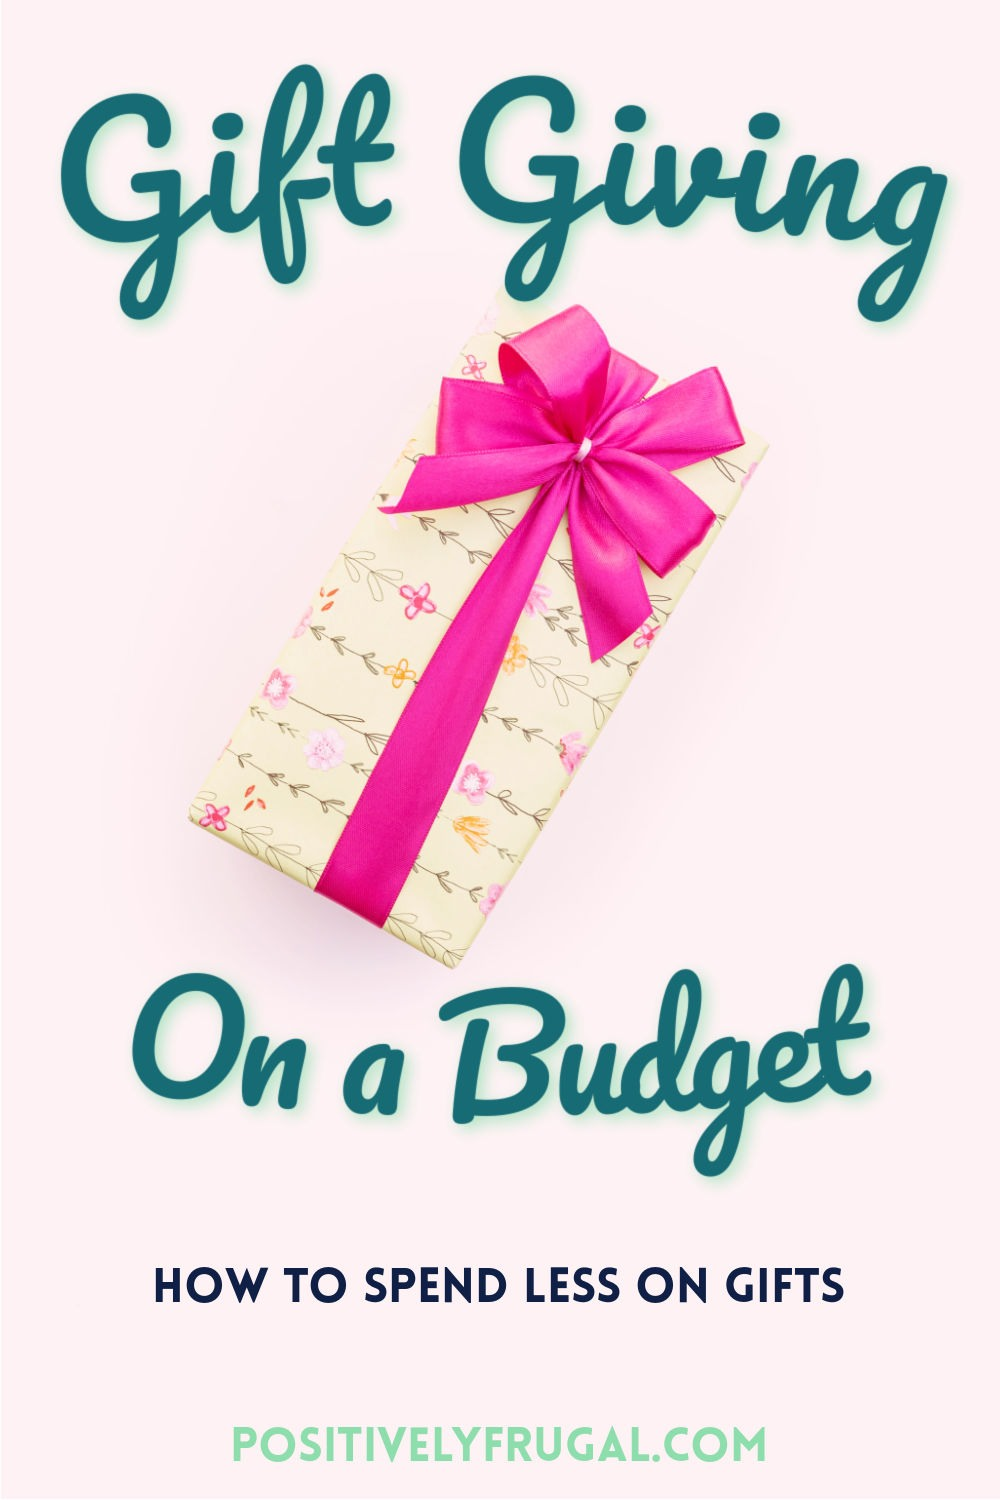 Gift Giving on a Budget How To Spend Less on Gifts by PositivelyFrugal.com